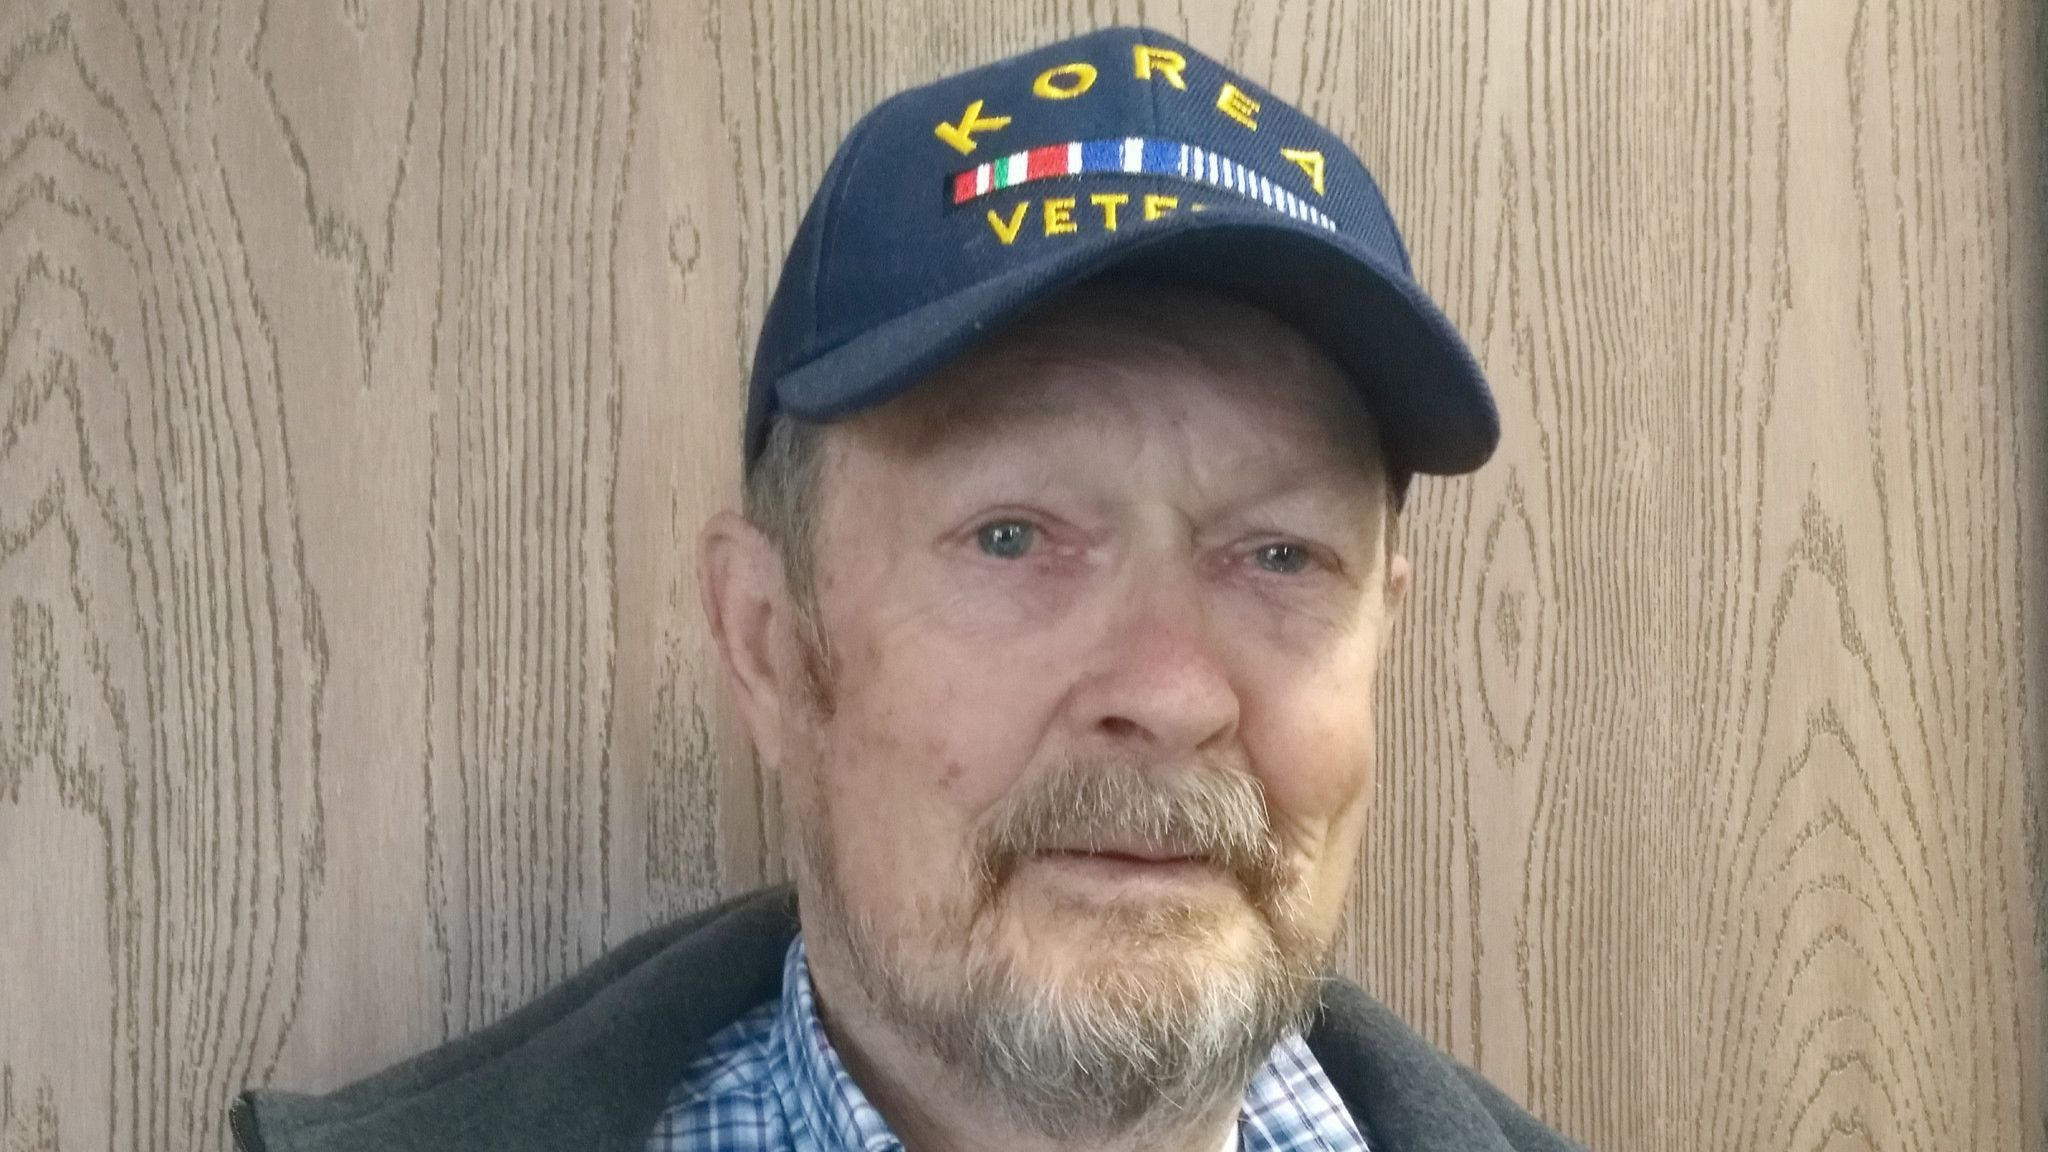 Wayne Jorde is an Army veteran who appreciates the opportunity to travel with other veterans on an Honor Flight Network trip to Washington, D.C.